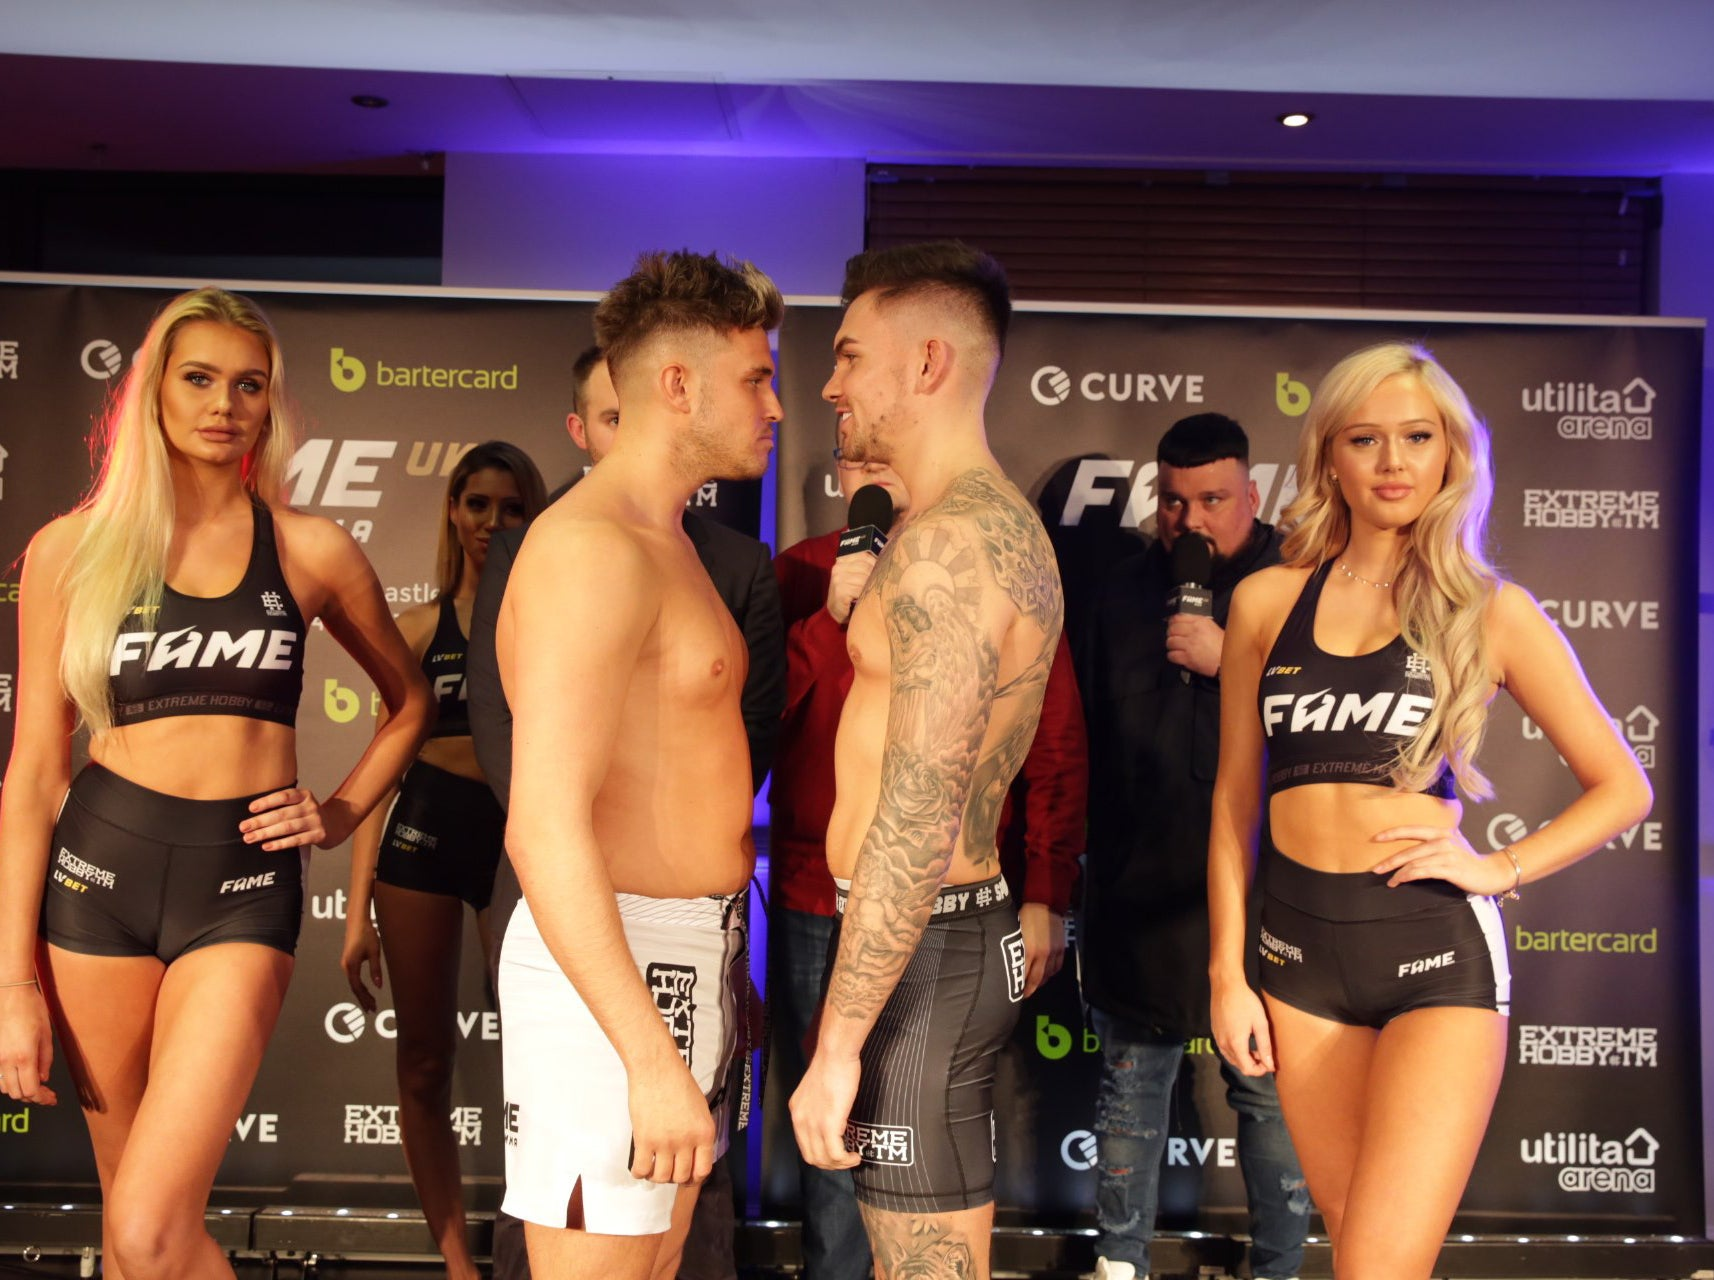 FAME MMA UK LIVE: Stream, fight start times, TV channel, pay-per-view and undercard results